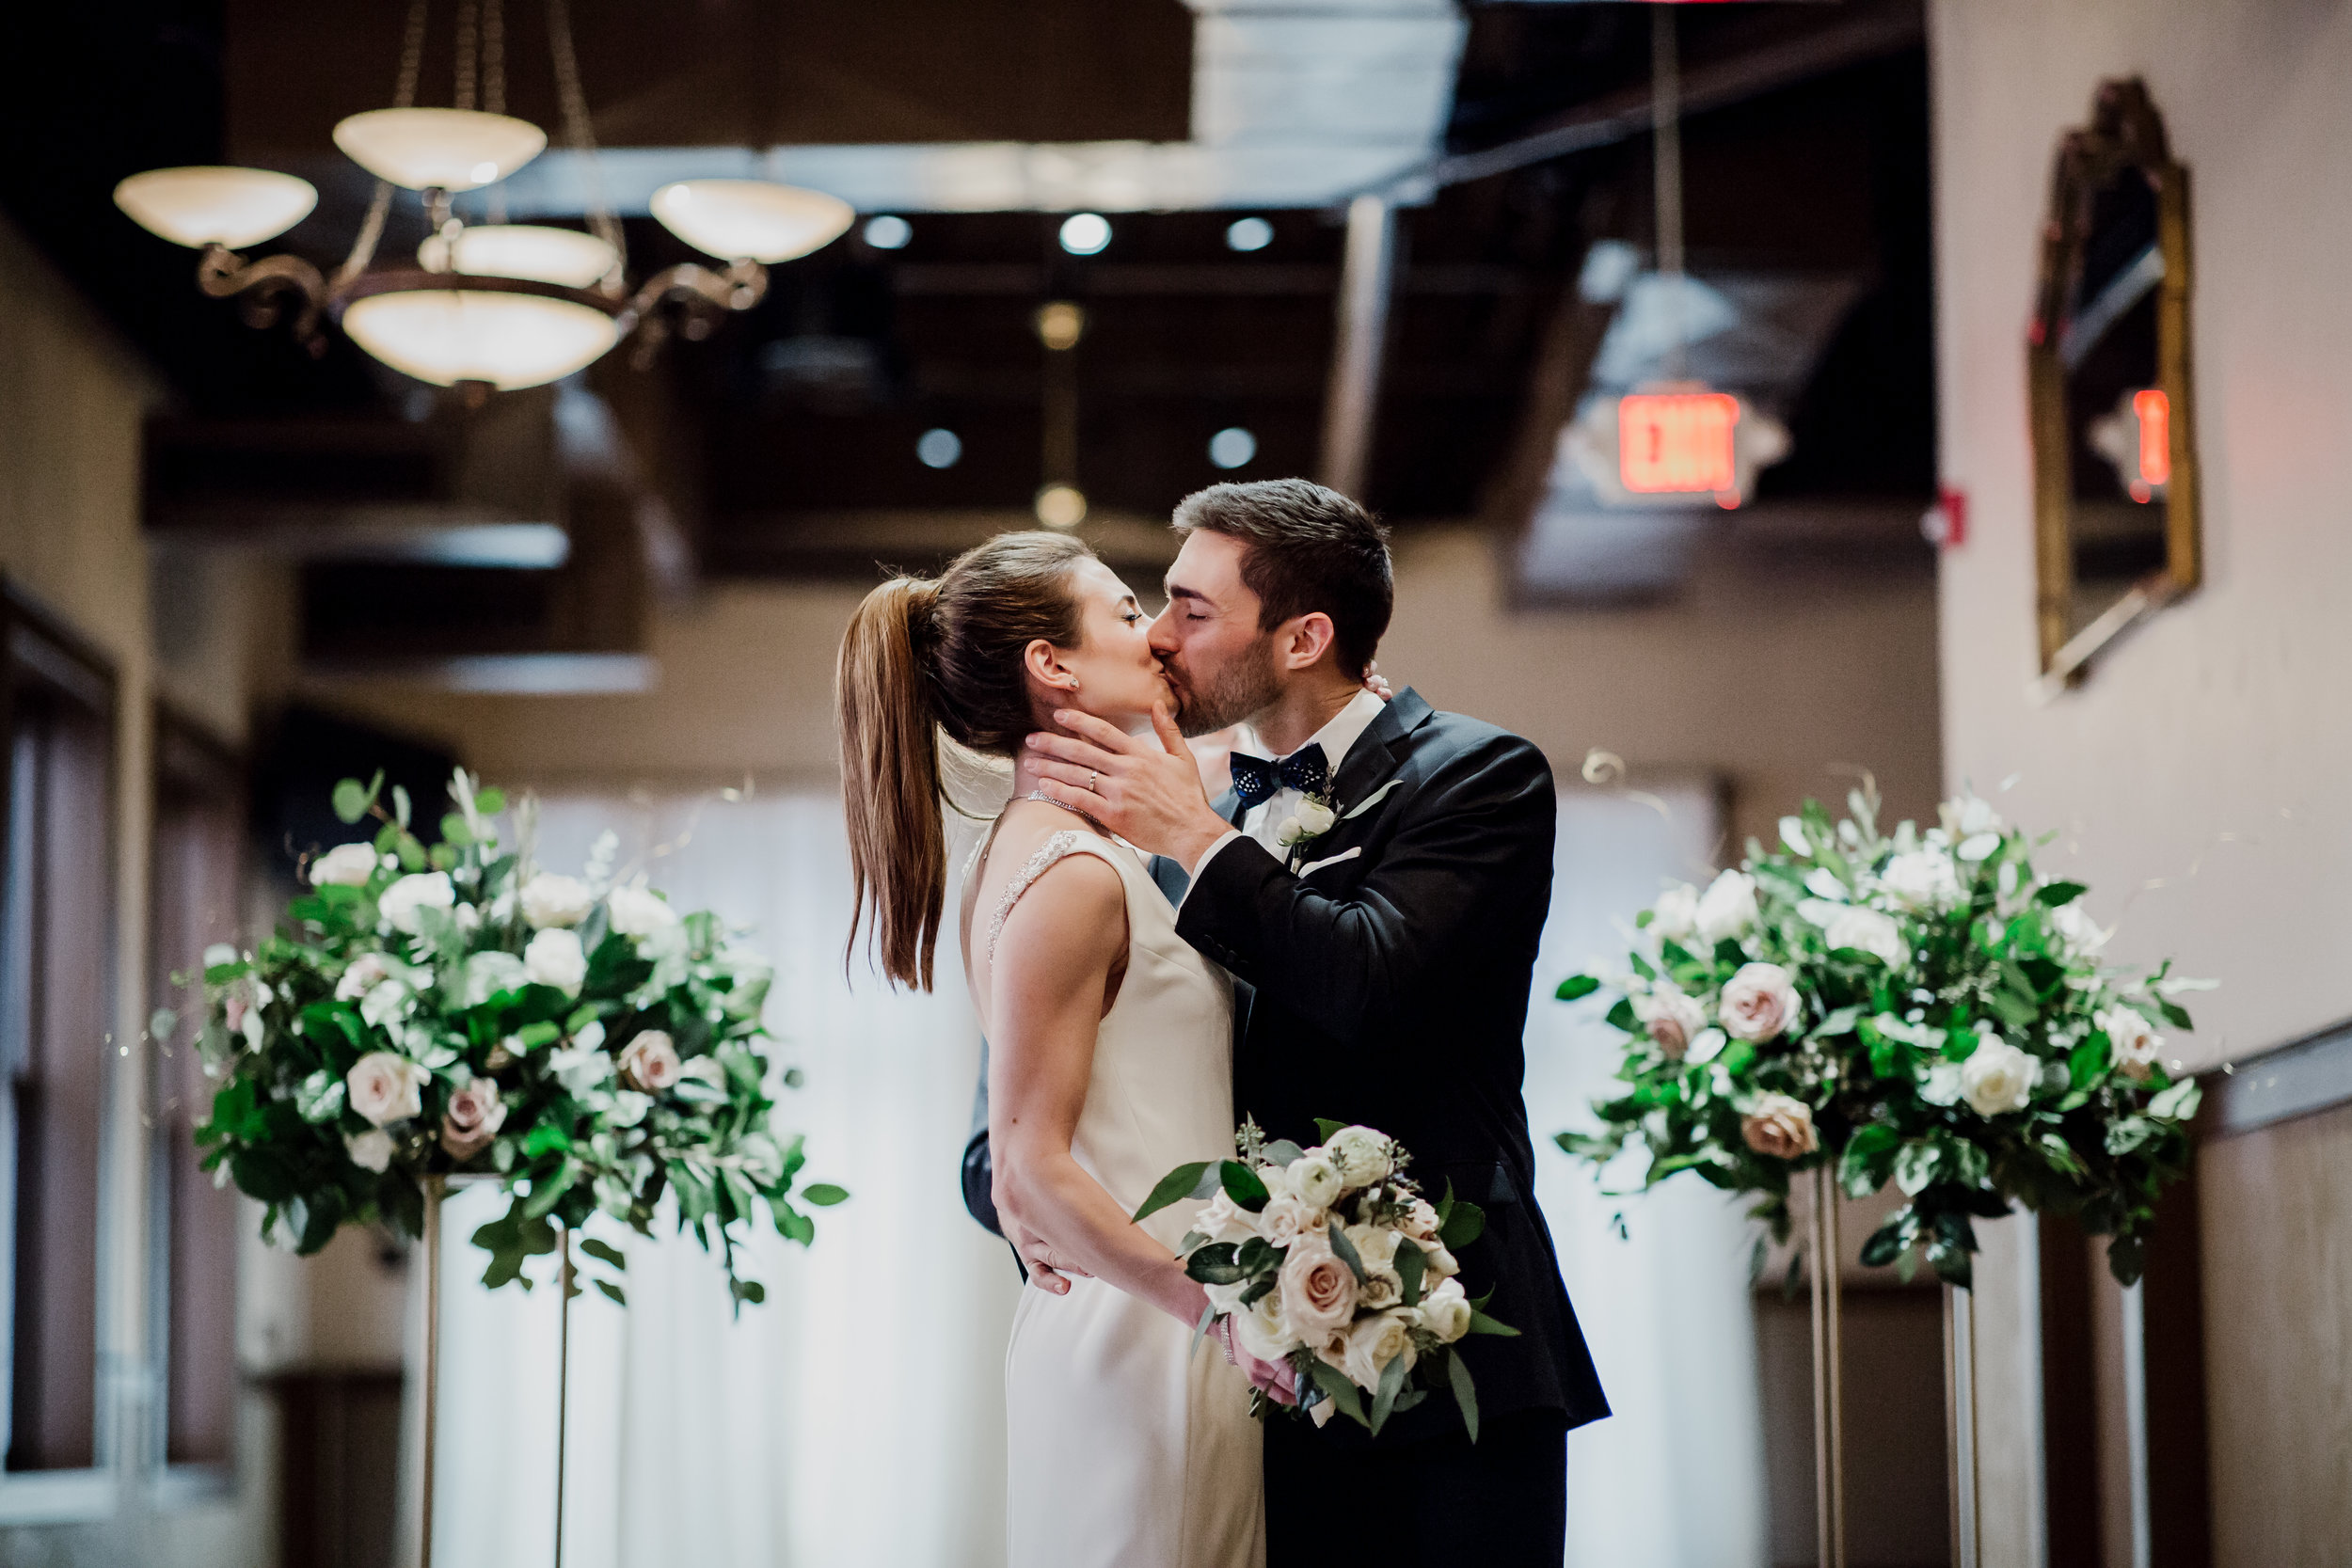 thecarrsphotography_emily_andy_wedding_0265.jpg